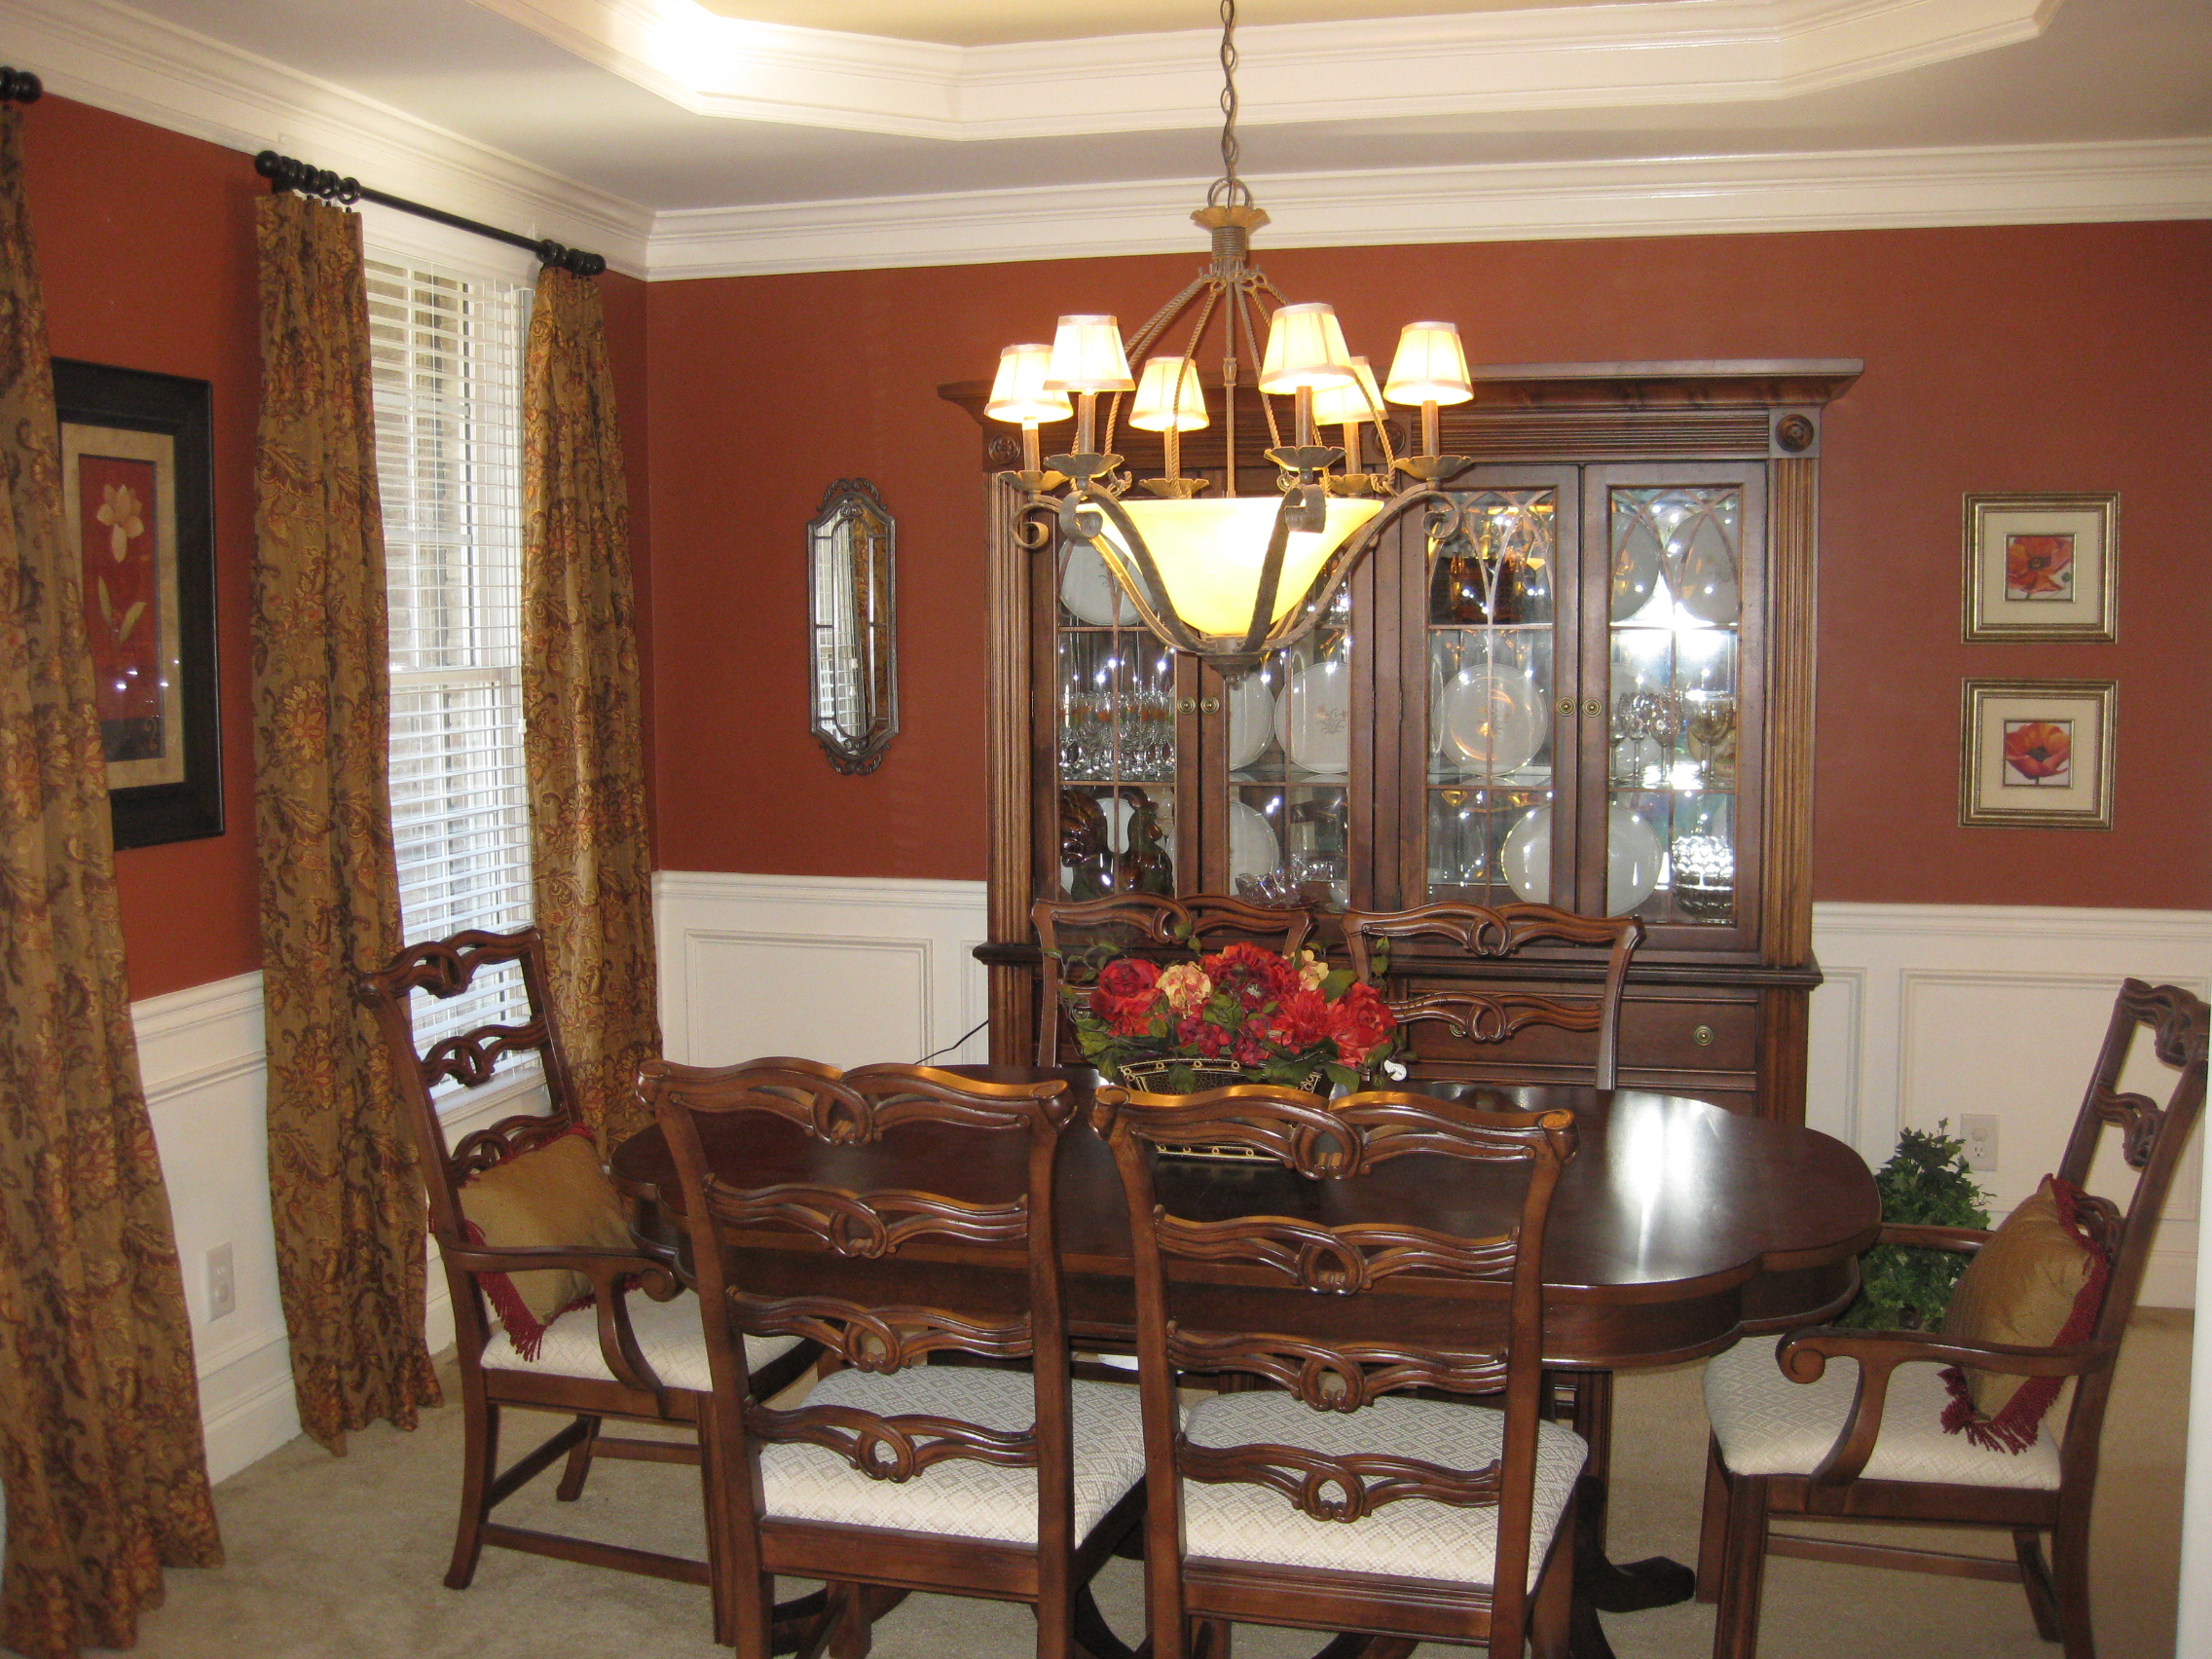 Traditional dining room decorating ideas 20 architecture for Dining room decorating ideas